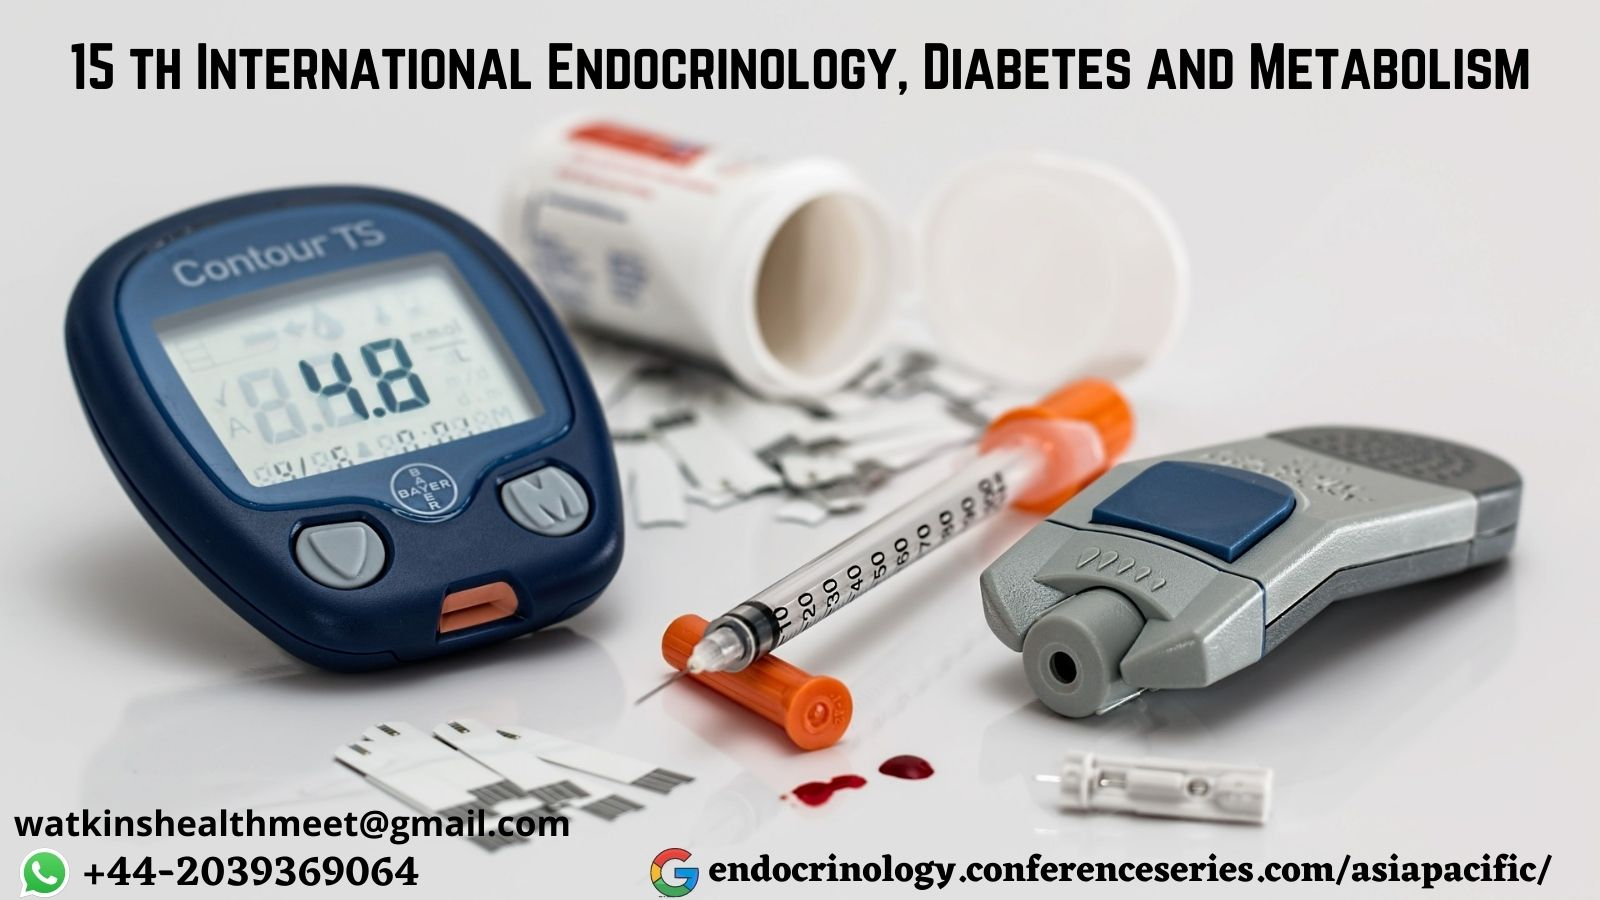 15-th-International-Endocrinology-Diabetes-and-Metabolism.jpg